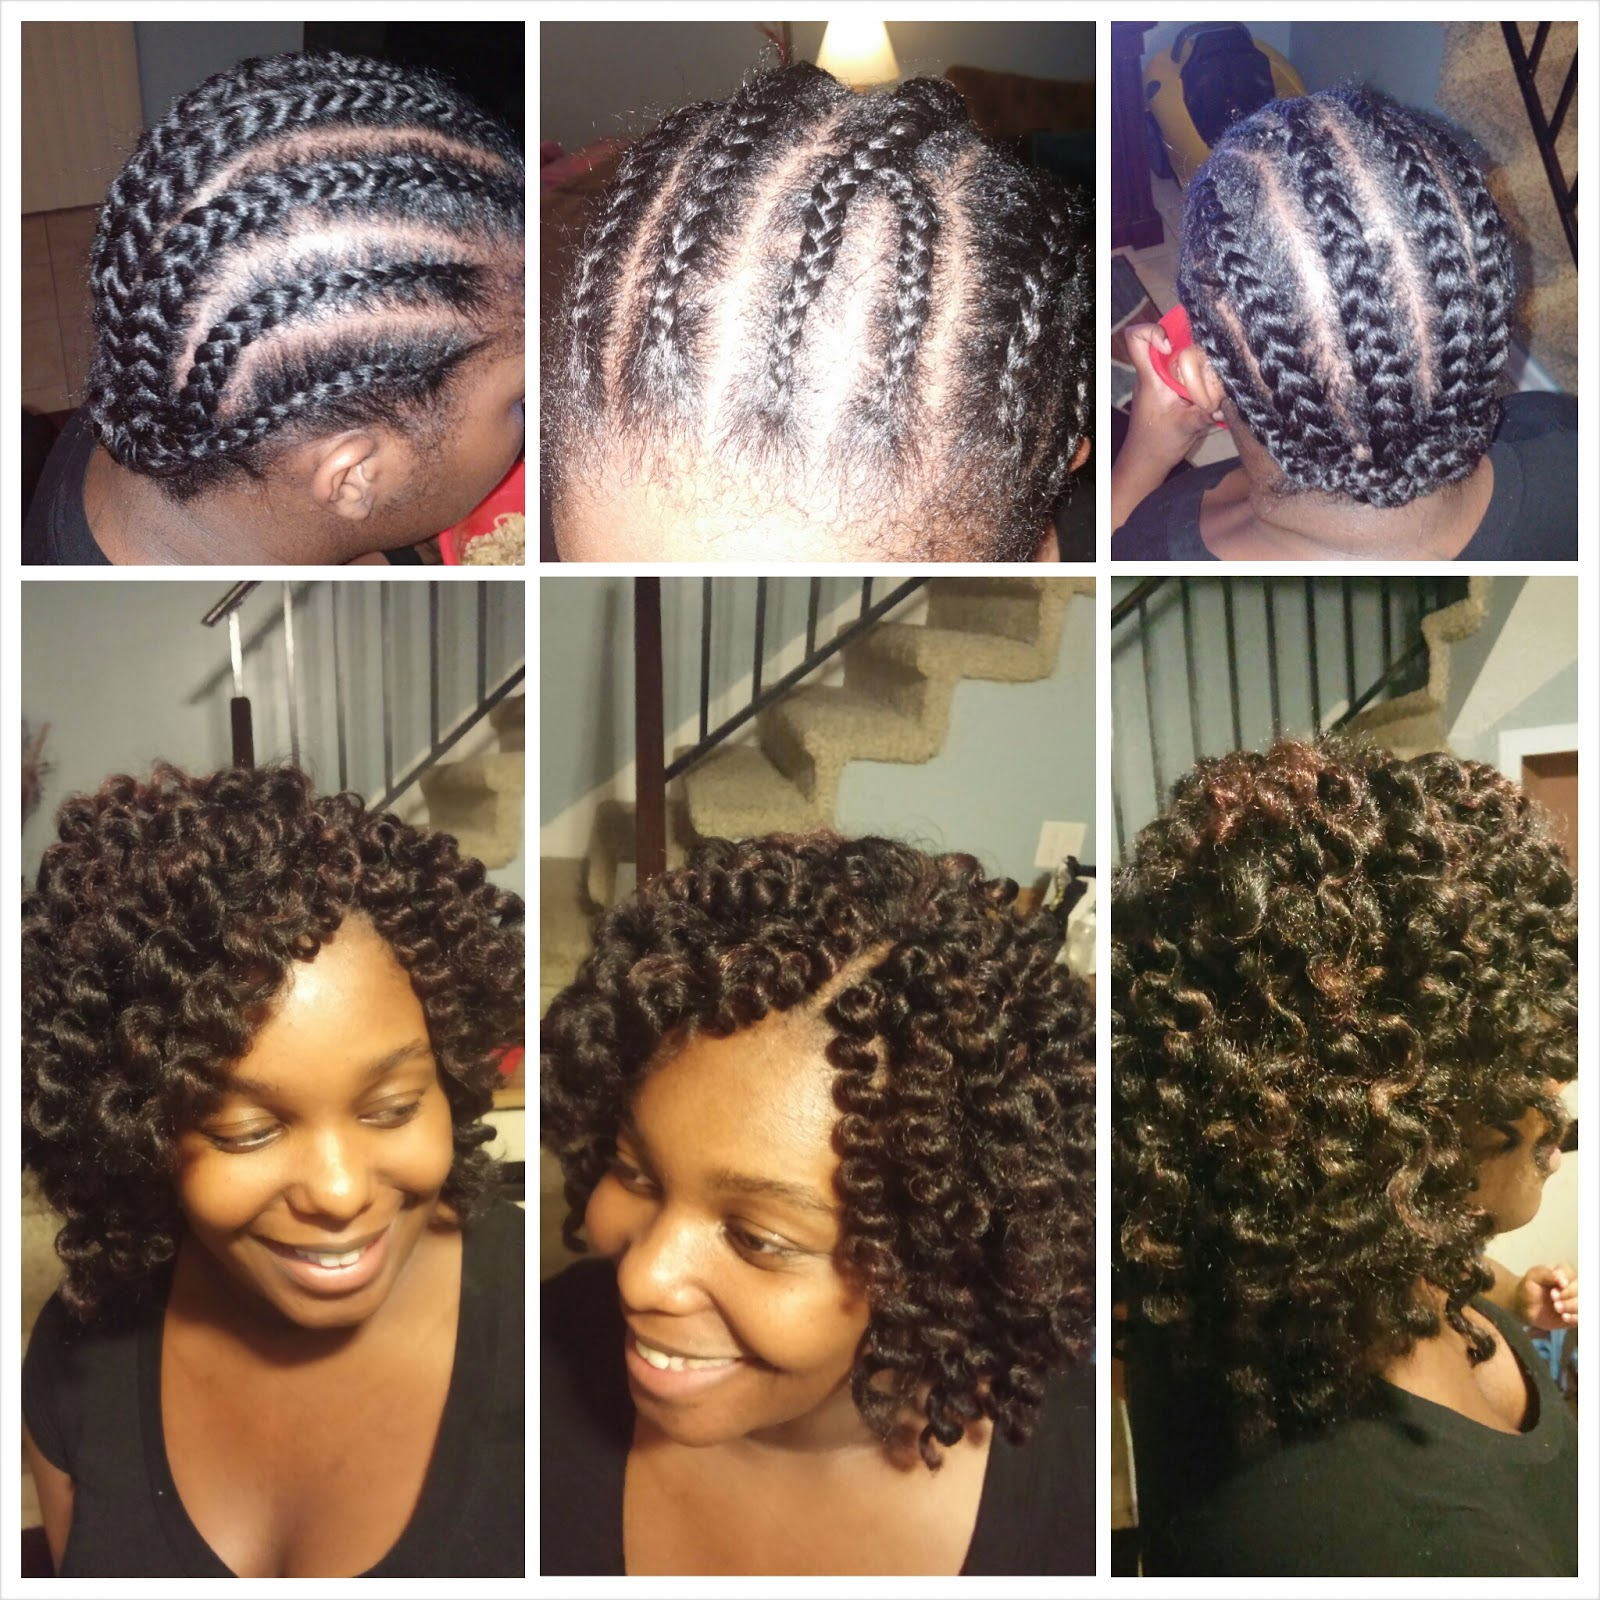 Crochet Braids Hair Growth : crochet braids tiwstout